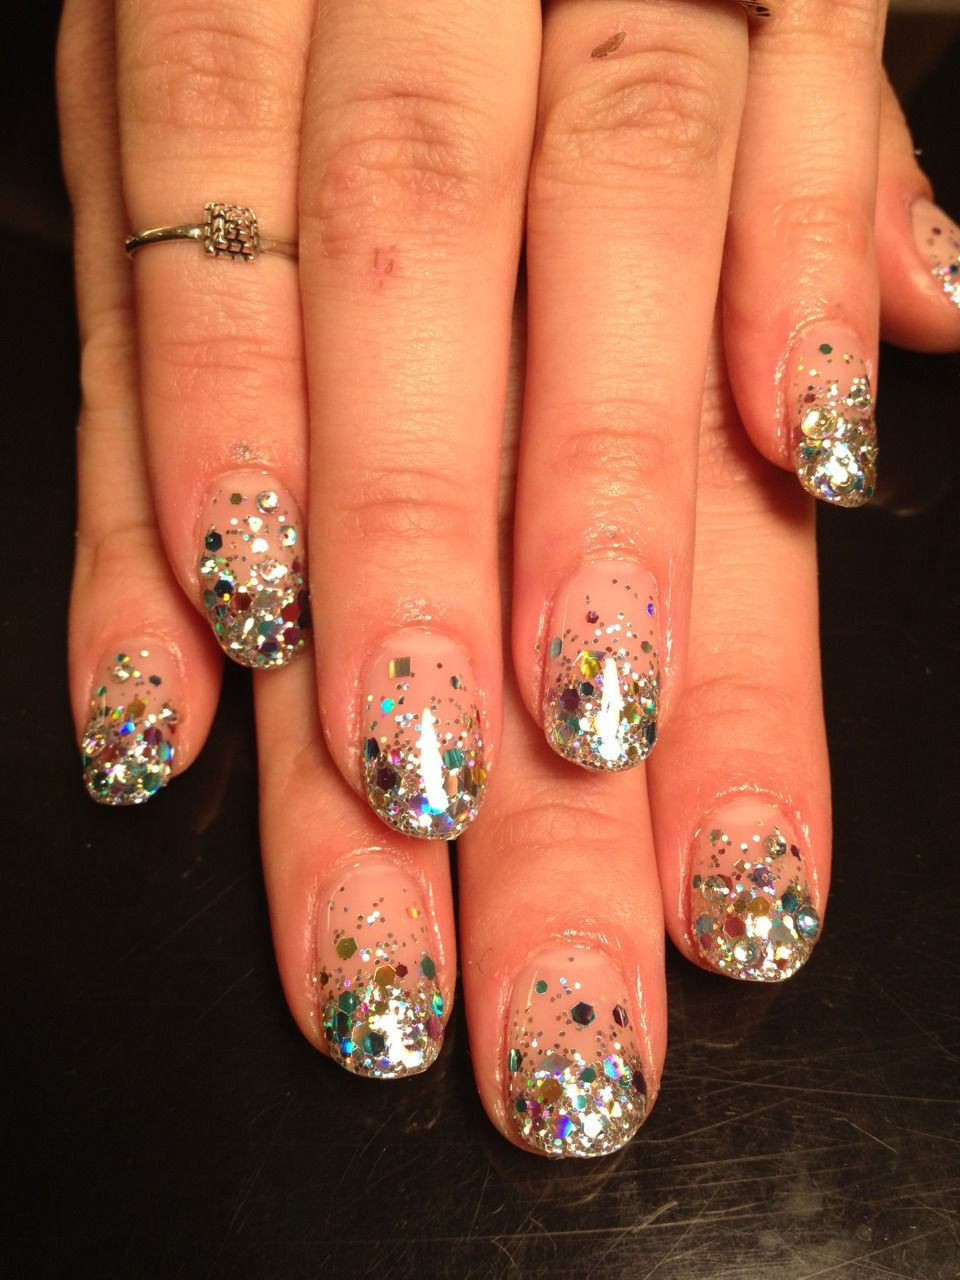 Disco Ball. These look like birthday nails to me